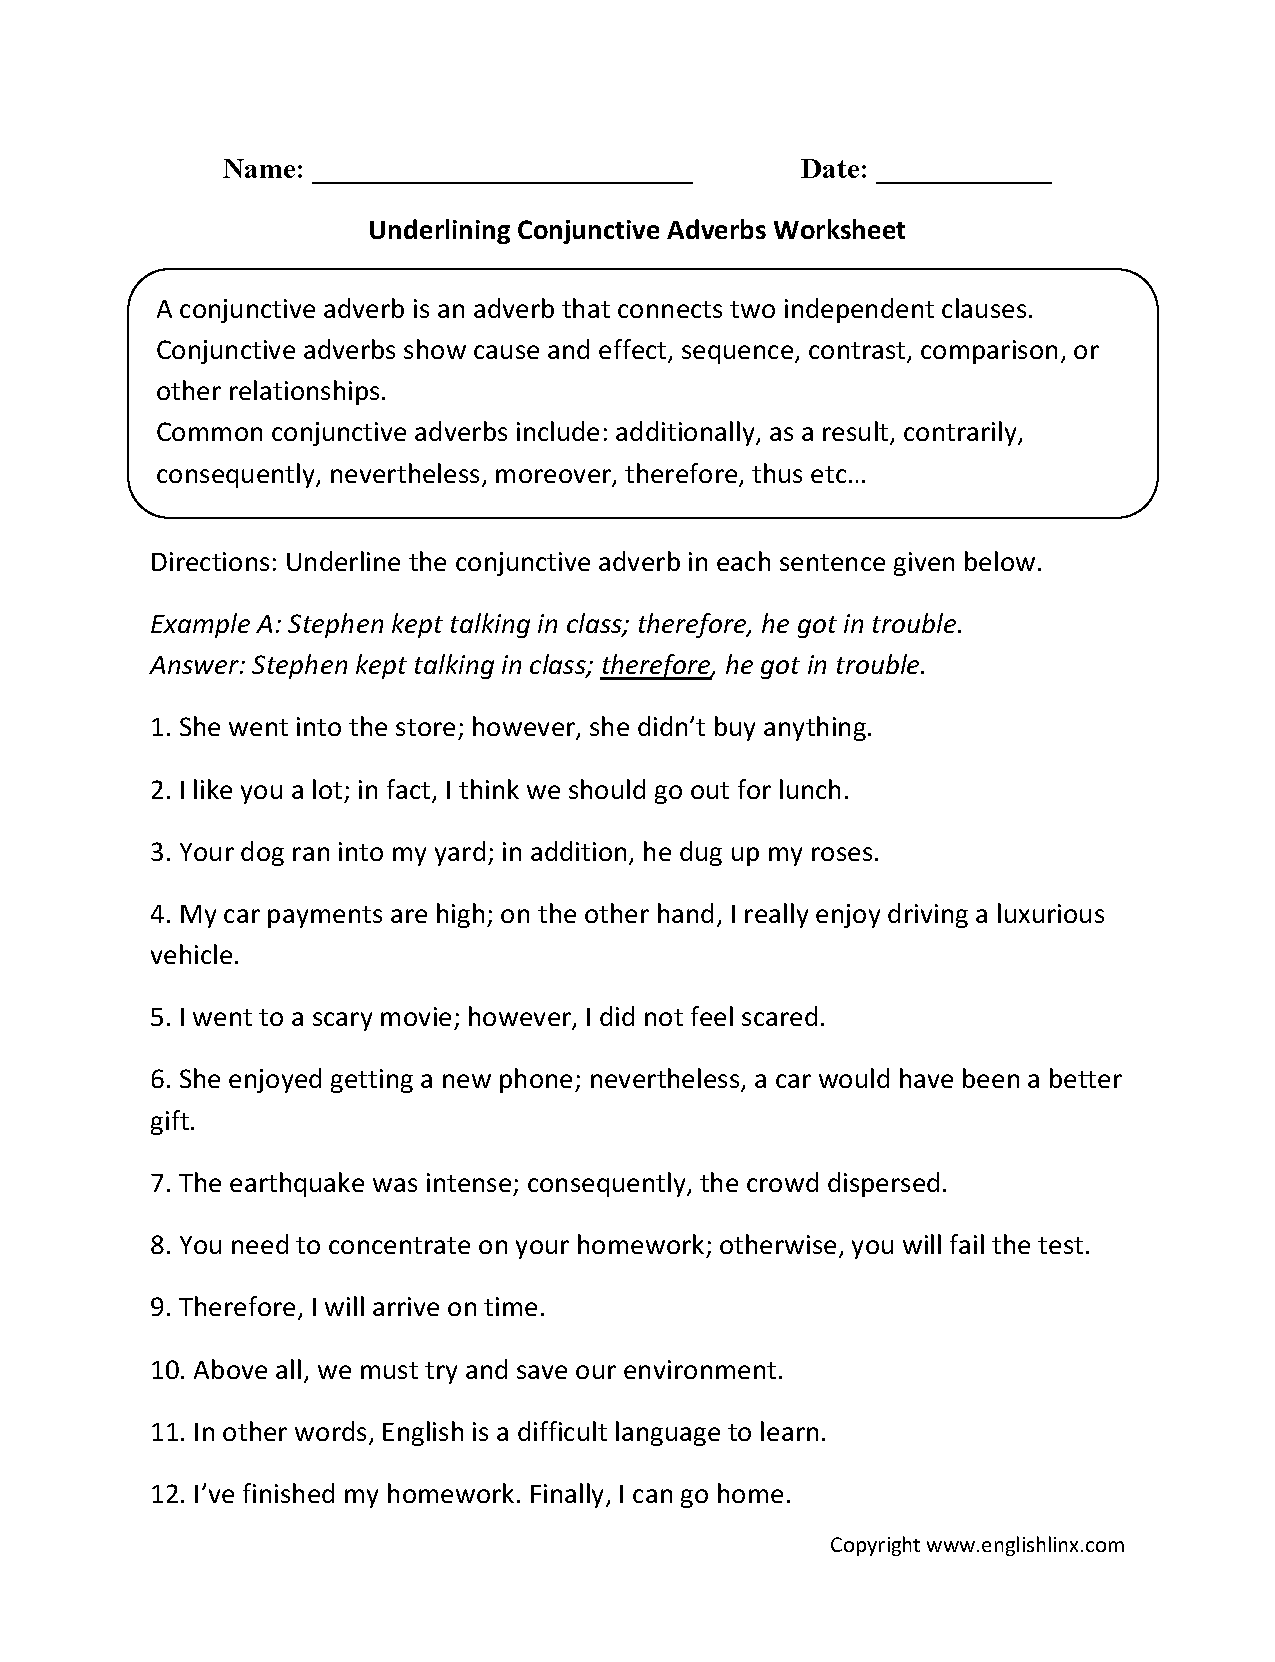 Proatmealus  Scenic Englishlinxcom  Conjunctions Worksheets With Exciting Worksheet With Extraordinary English Th Grade Worksheets Also Free Printable Phonics Worksheets For St Grade In Addition Whmis And Safety Worksheet And Bar Graph Worksheets Grade  As Well As Persuasive Writing Worksheets Grade  Additionally Create Vocabulary Worksheet From Englishlinxcom With Proatmealus  Exciting Englishlinxcom  Conjunctions Worksheets With Extraordinary Worksheet And Scenic English Th Grade Worksheets Also Free Printable Phonics Worksheets For St Grade In Addition Whmis And Safety Worksheet From Englishlinxcom